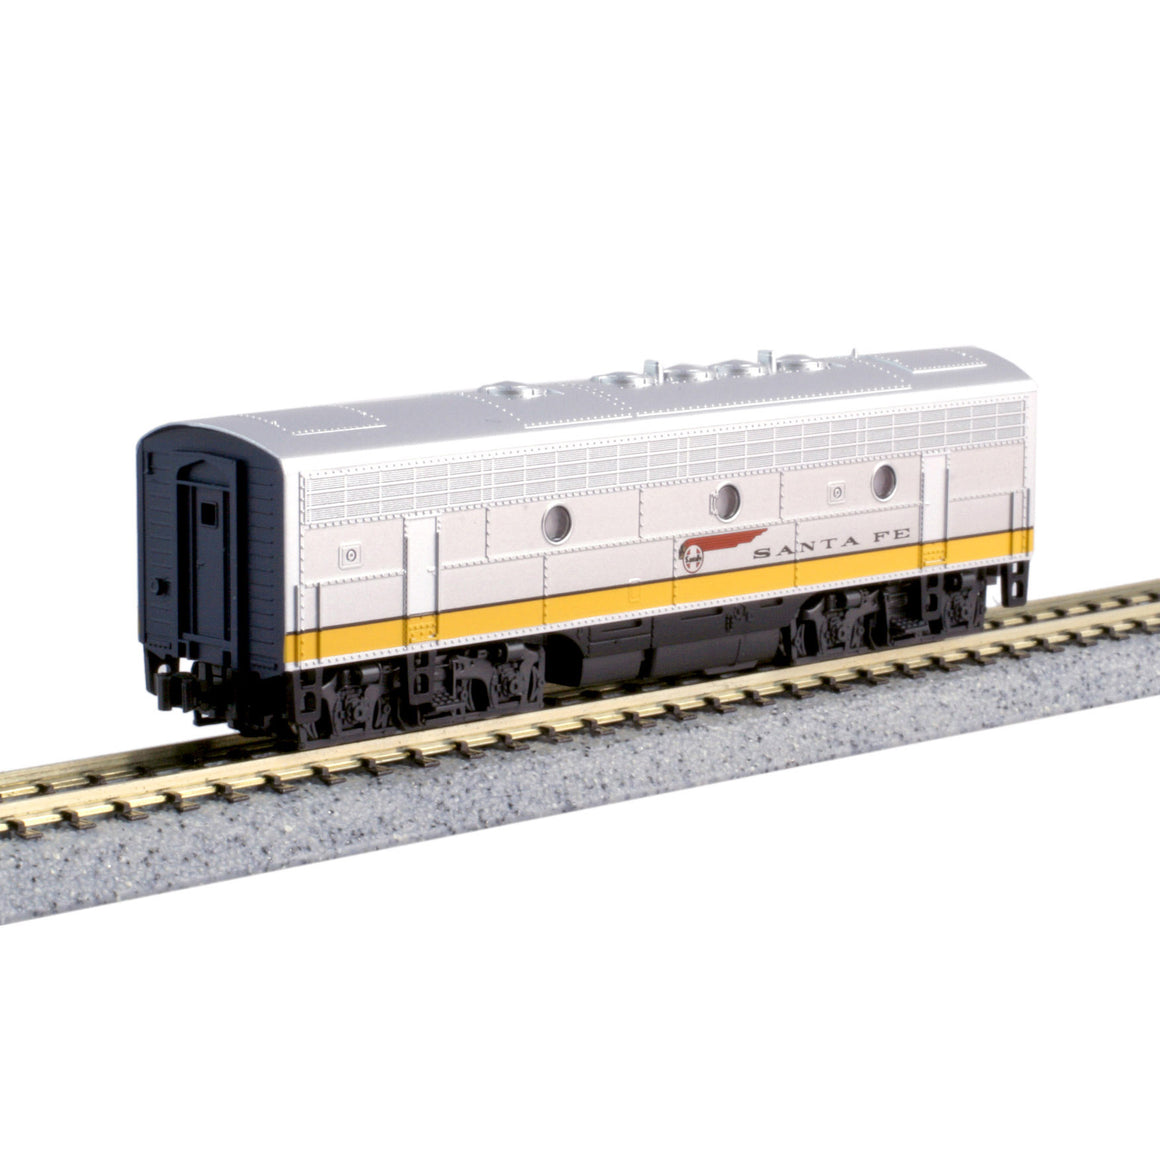 N Scale: EMD F7A & F7B Locomotives - DCC Ready - Santa Fe